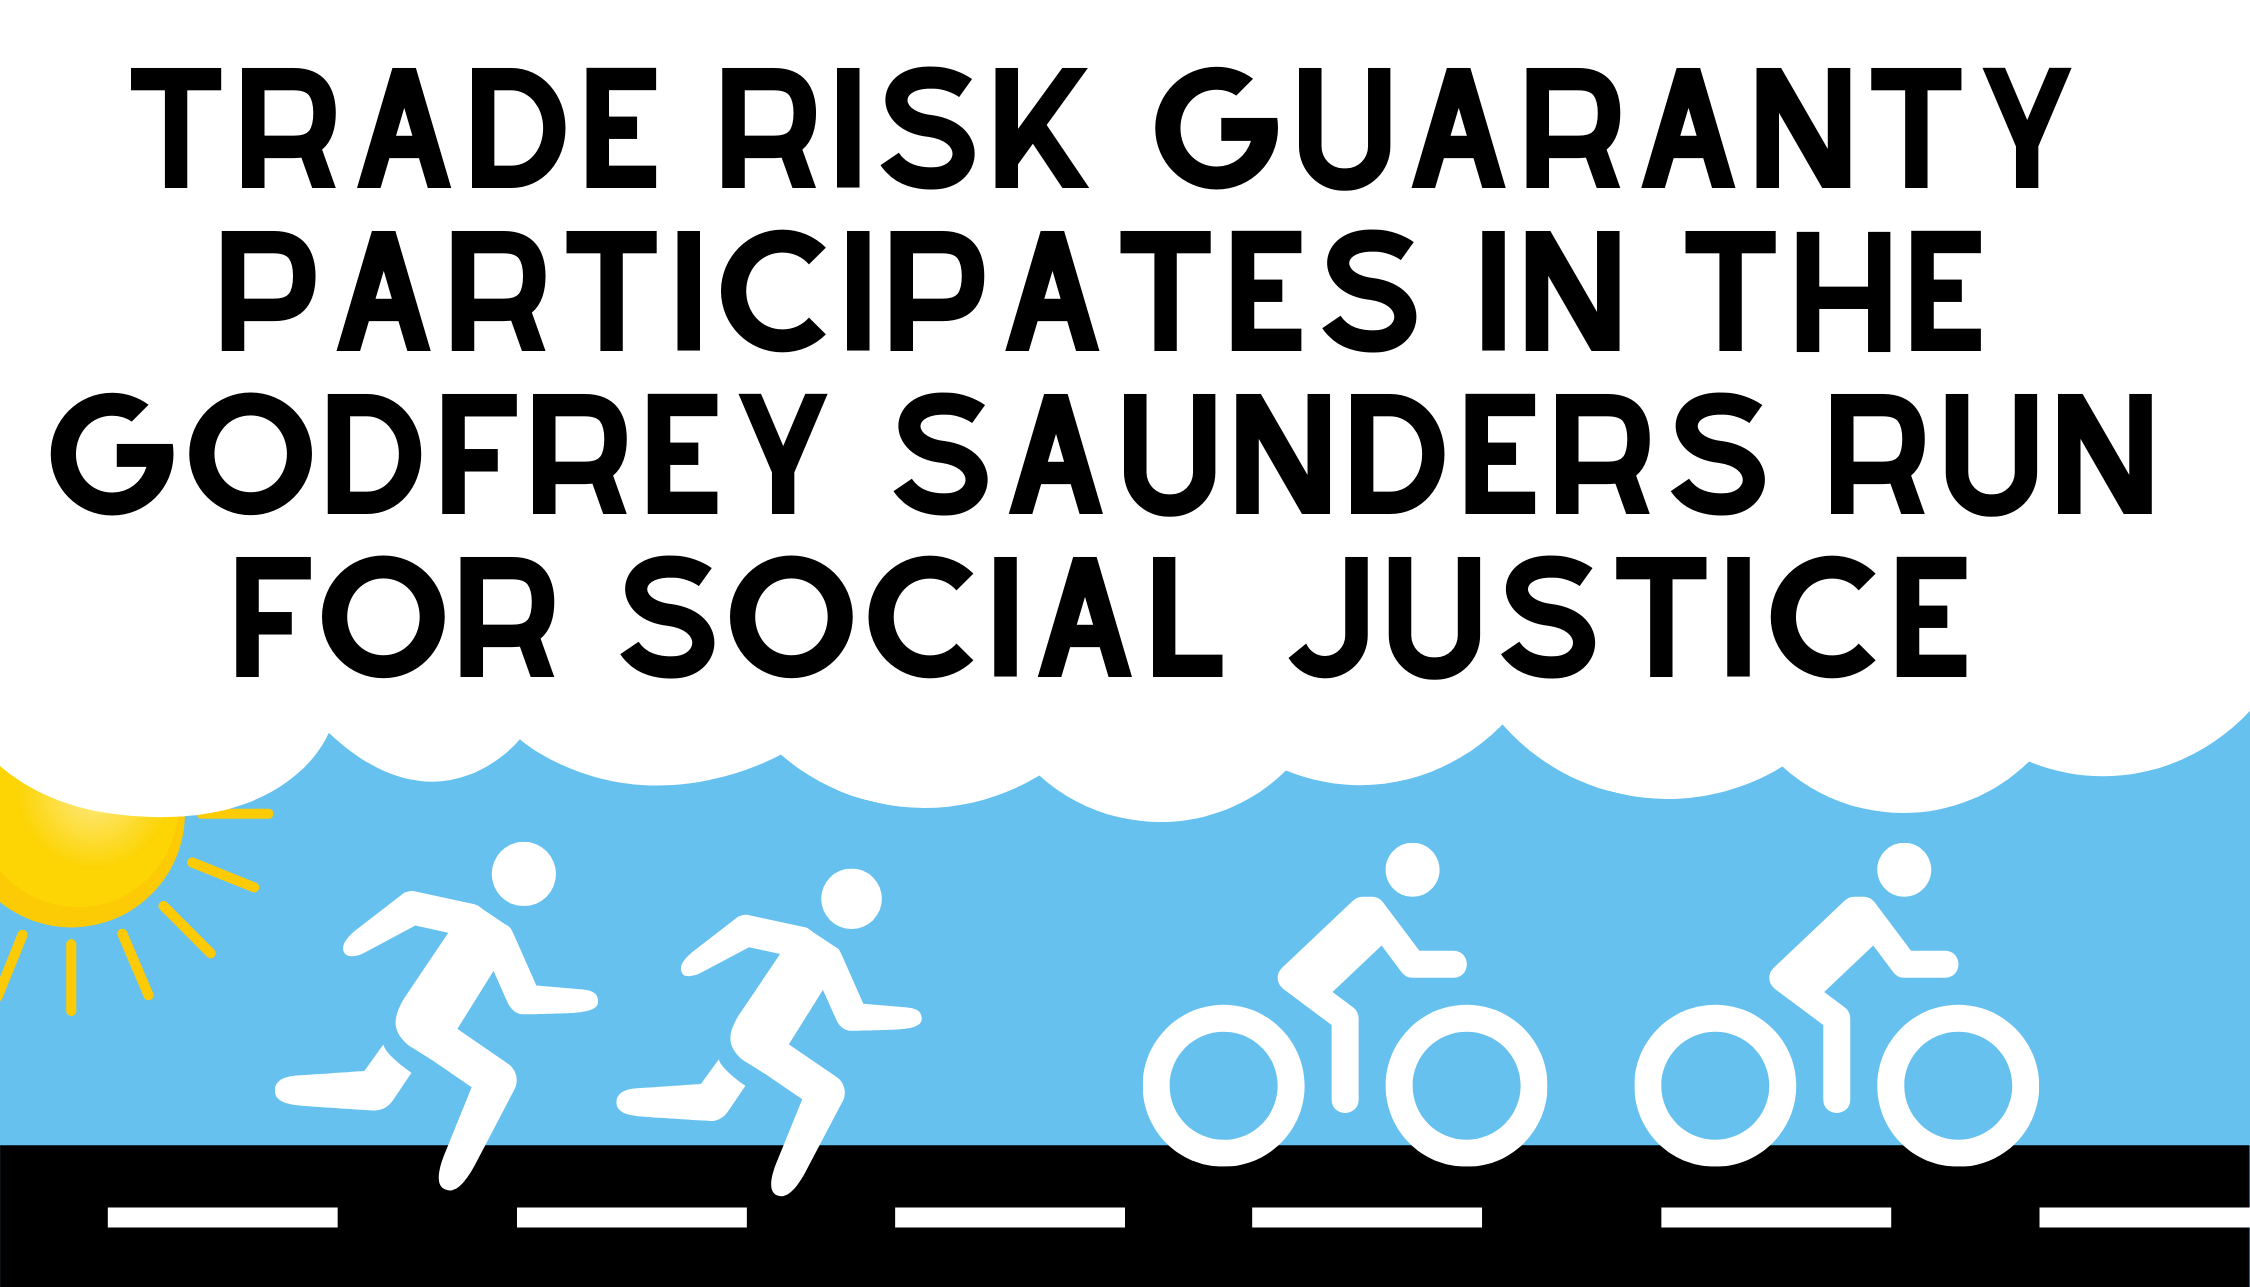 Trade Risk Guaranty Participates in the Godfrey Saunders Run for Social Justice